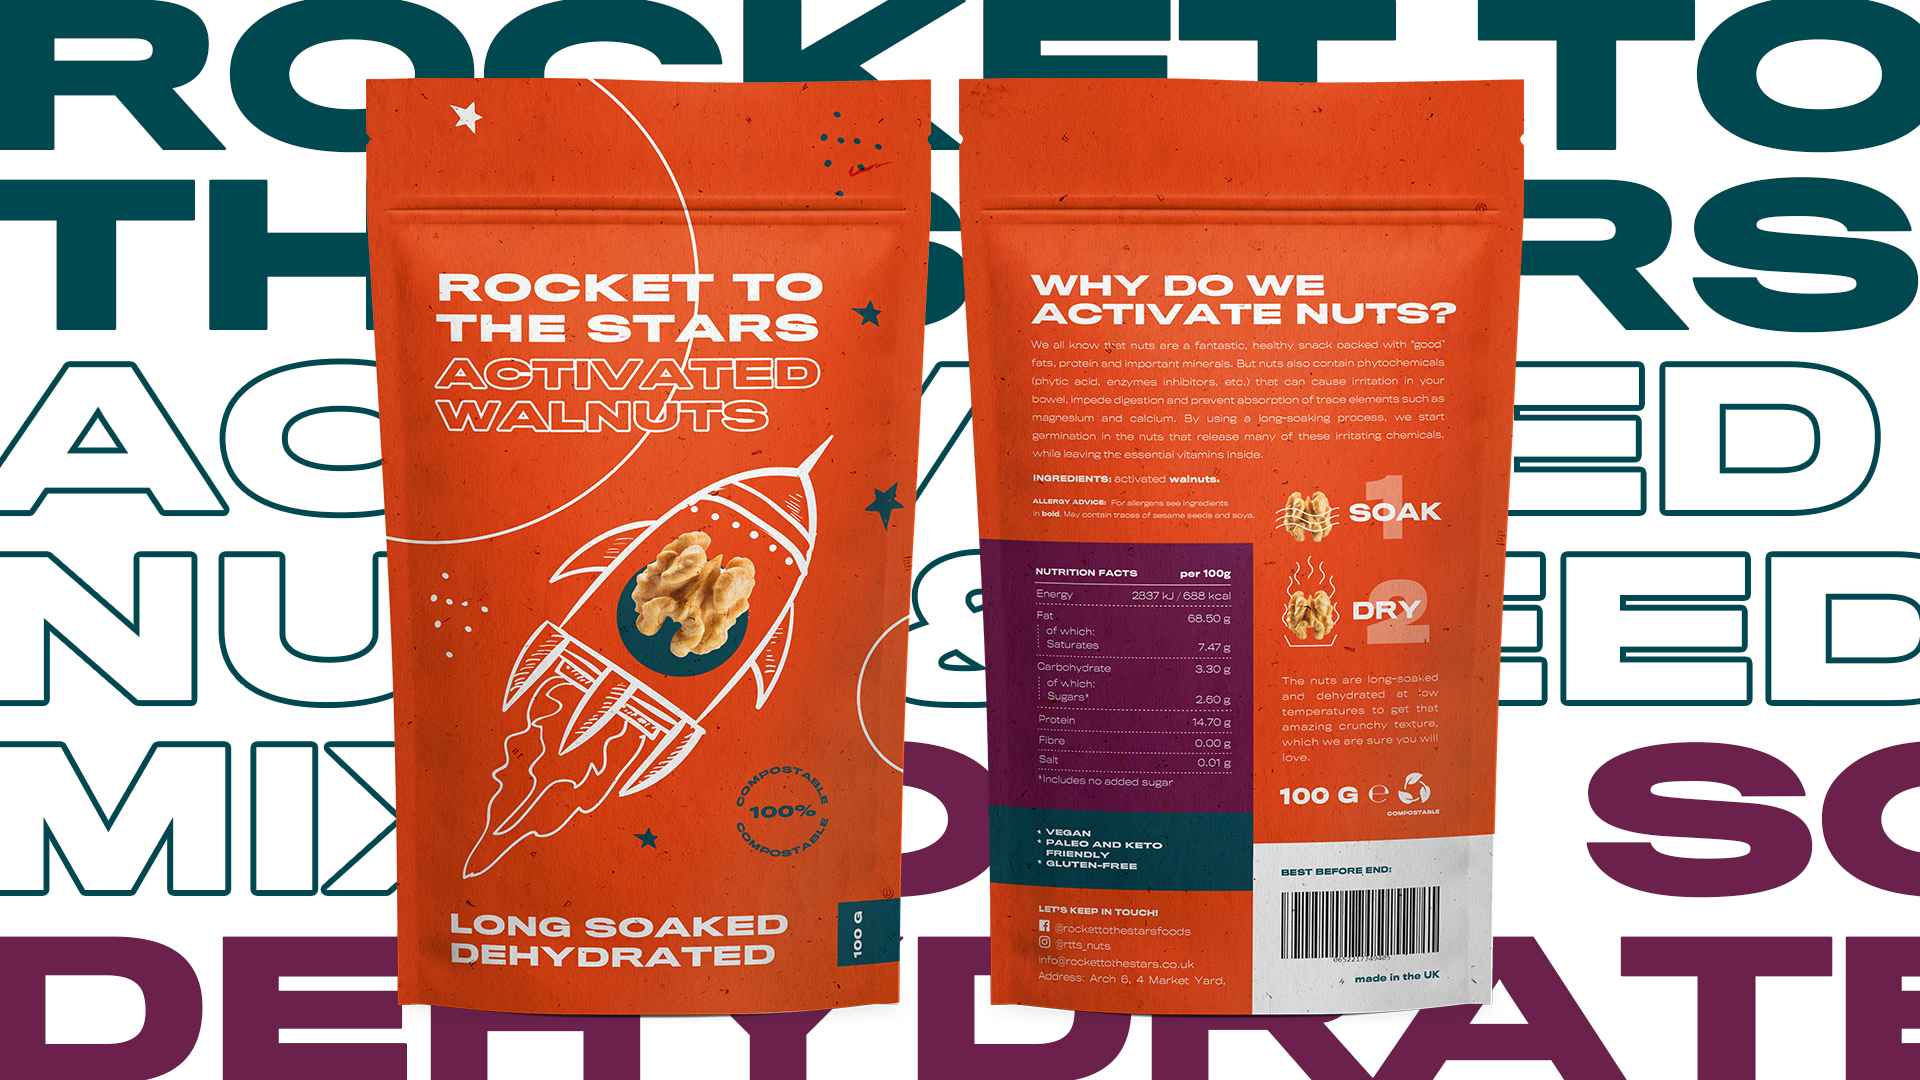 New Activated Nuts and Mixes Brand and Packaging Design for UK Market